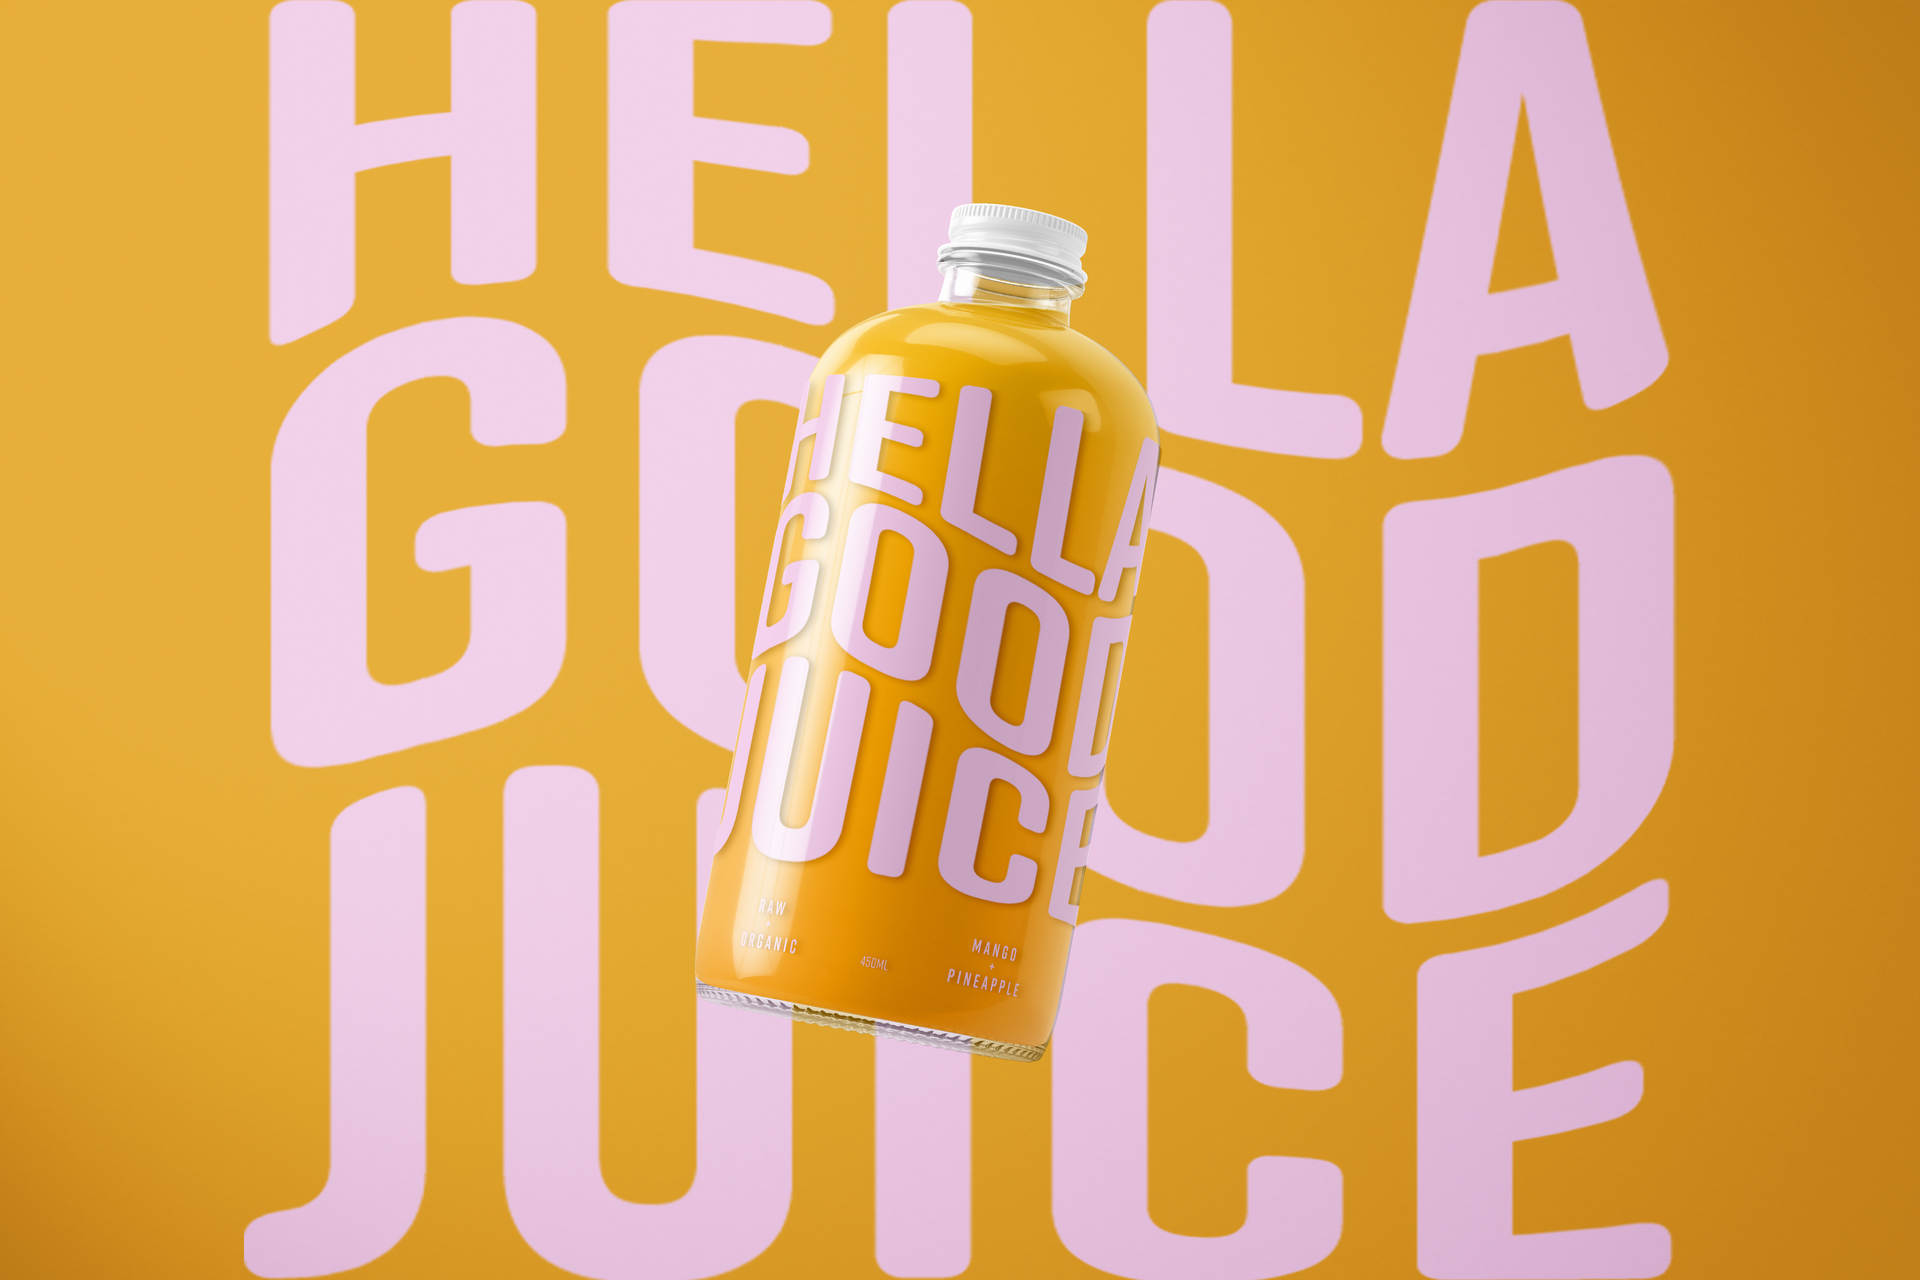 HELLA GOOD JUICE